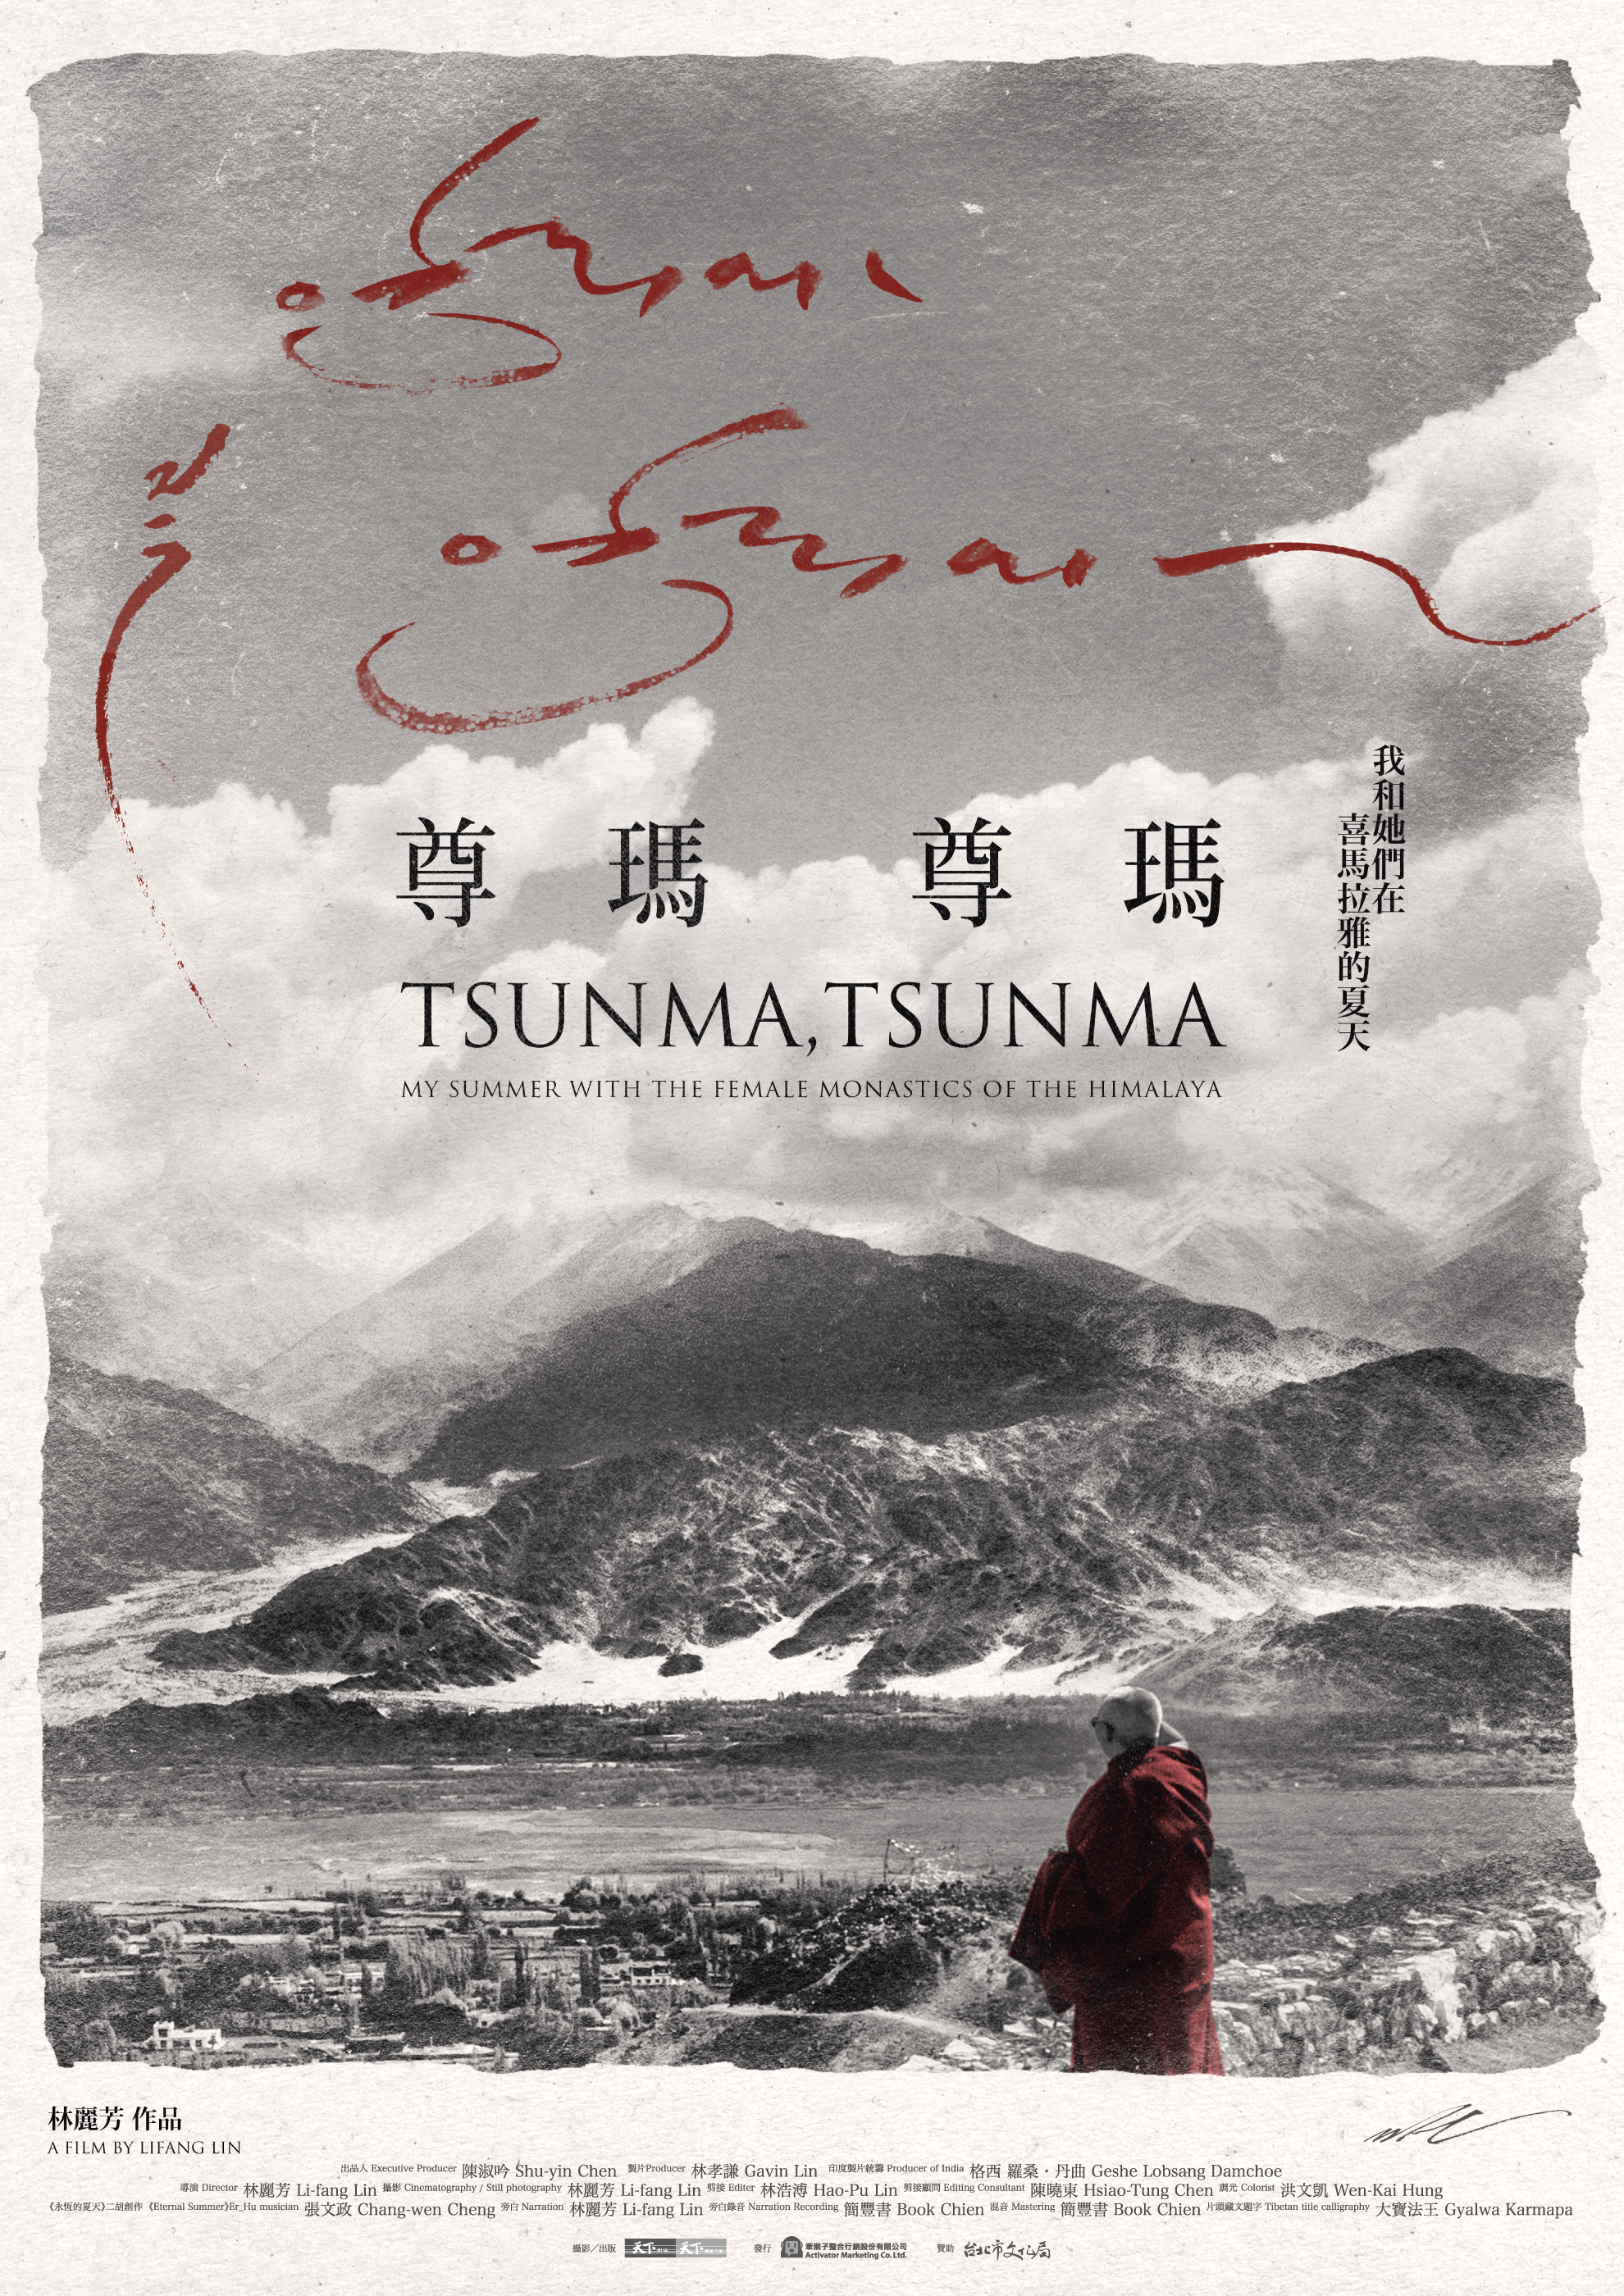 Tsunma, Tsunma: My Summer with the F